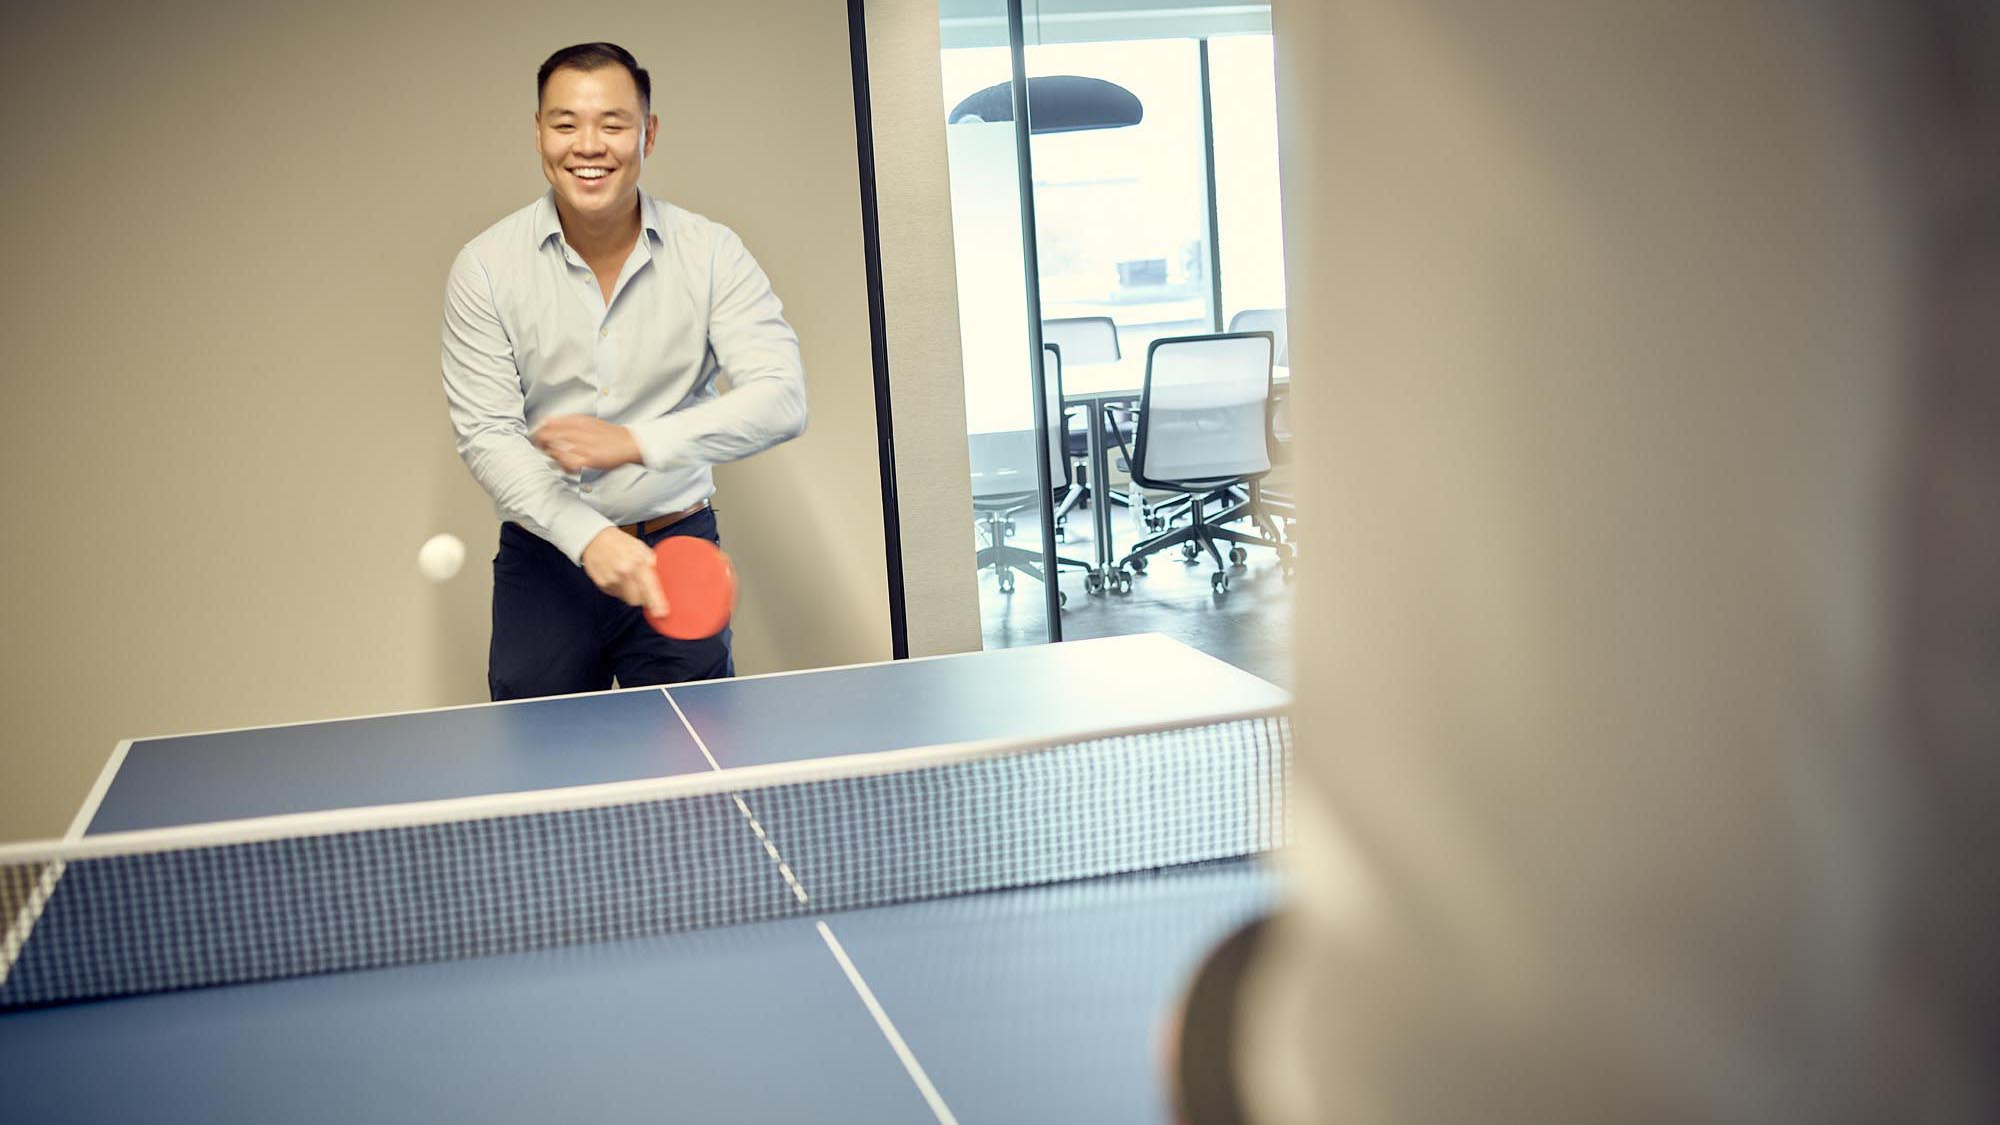 Two employees playing ping pong in an office